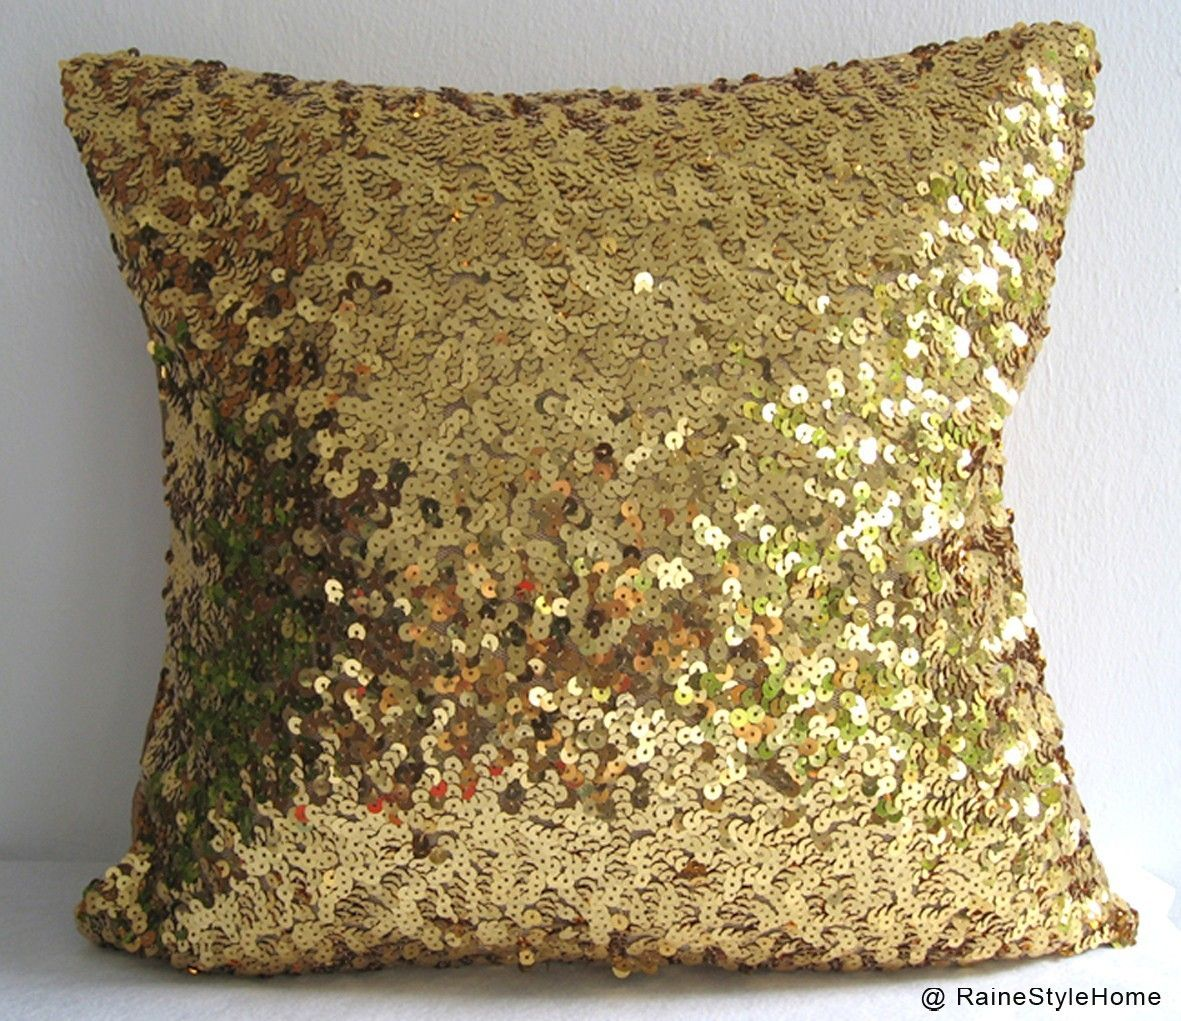 Sequin Chair Covers Uk Fold Up Chairs Sports Direct Starry Night Luxury Glamour Gold Sequins Embellished